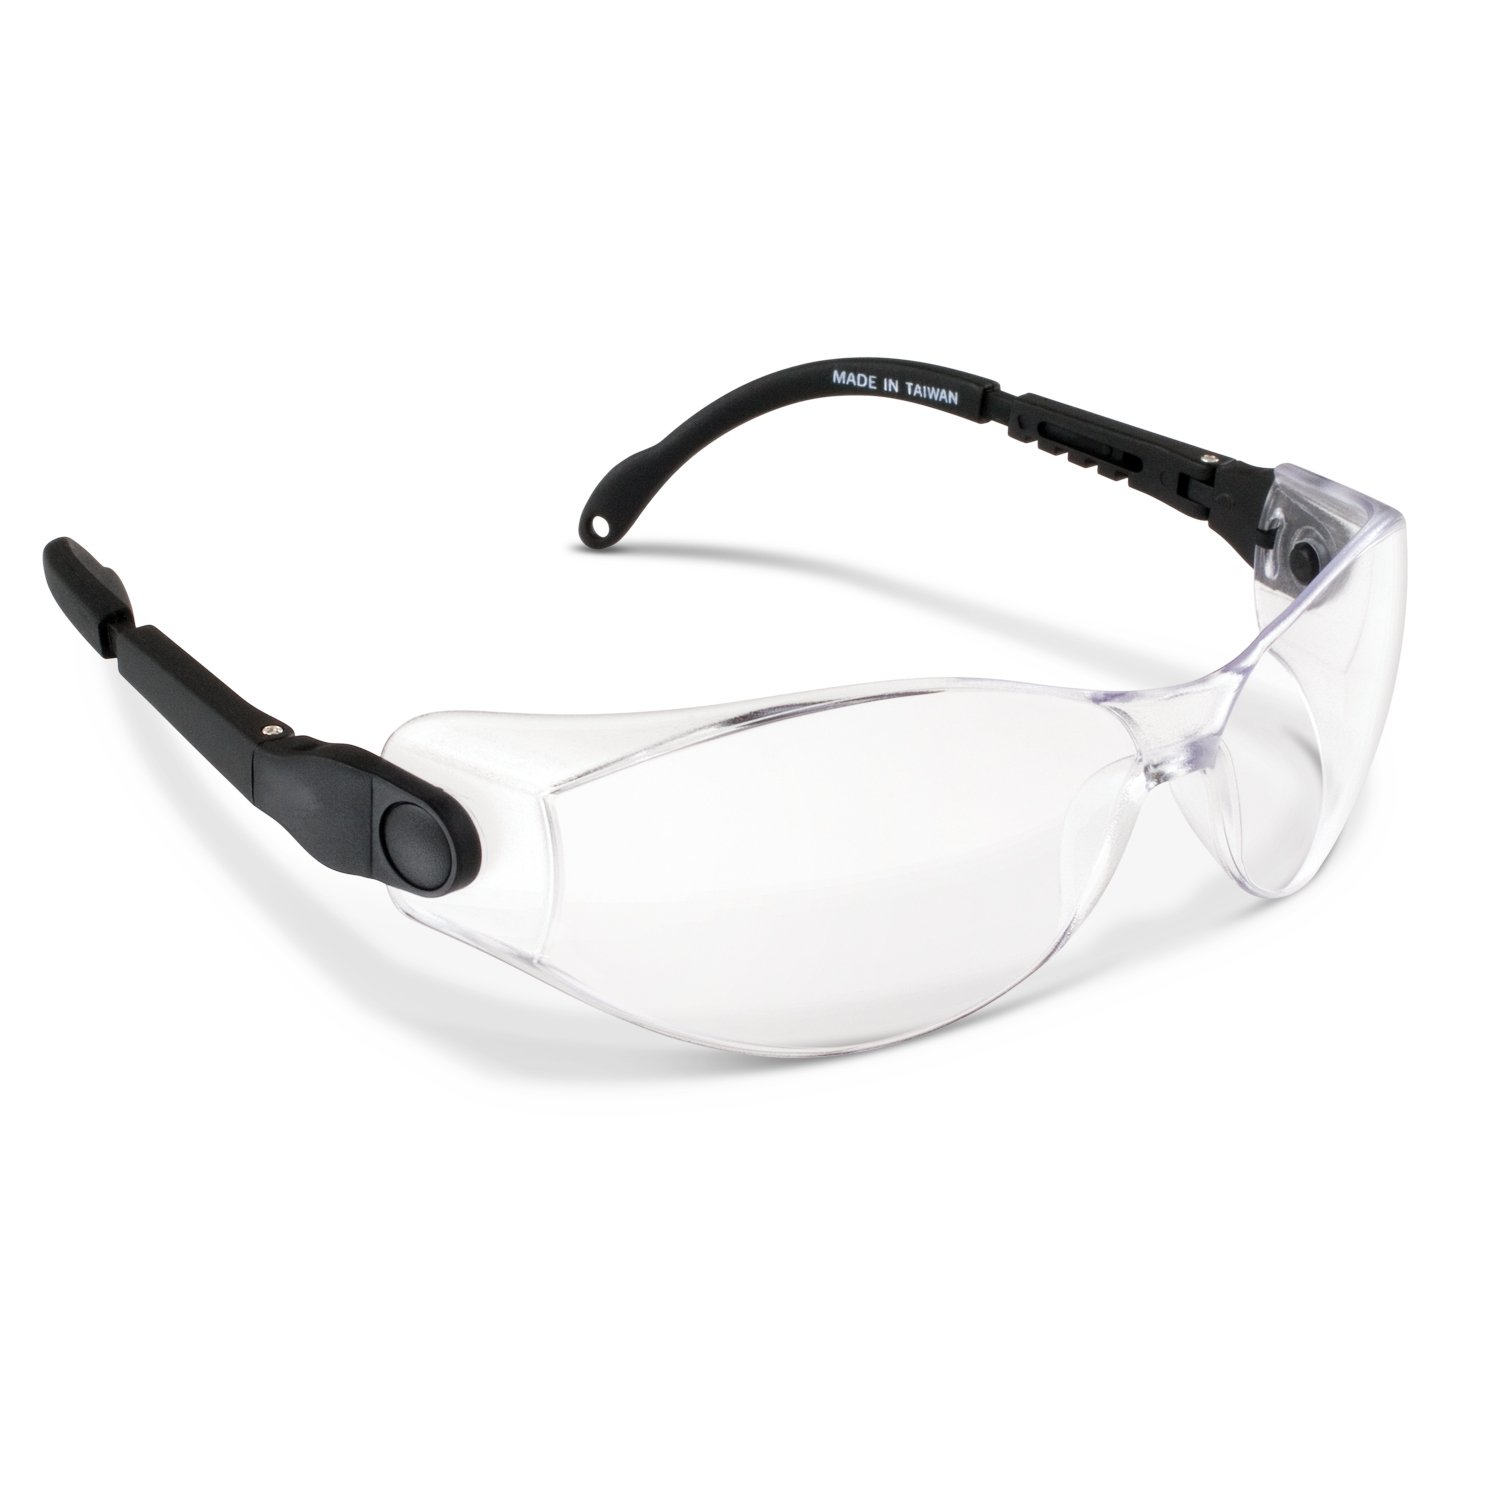 Practicon 7039712 CLE Fit-All Safety Glasses, Clear (Pack of 3)